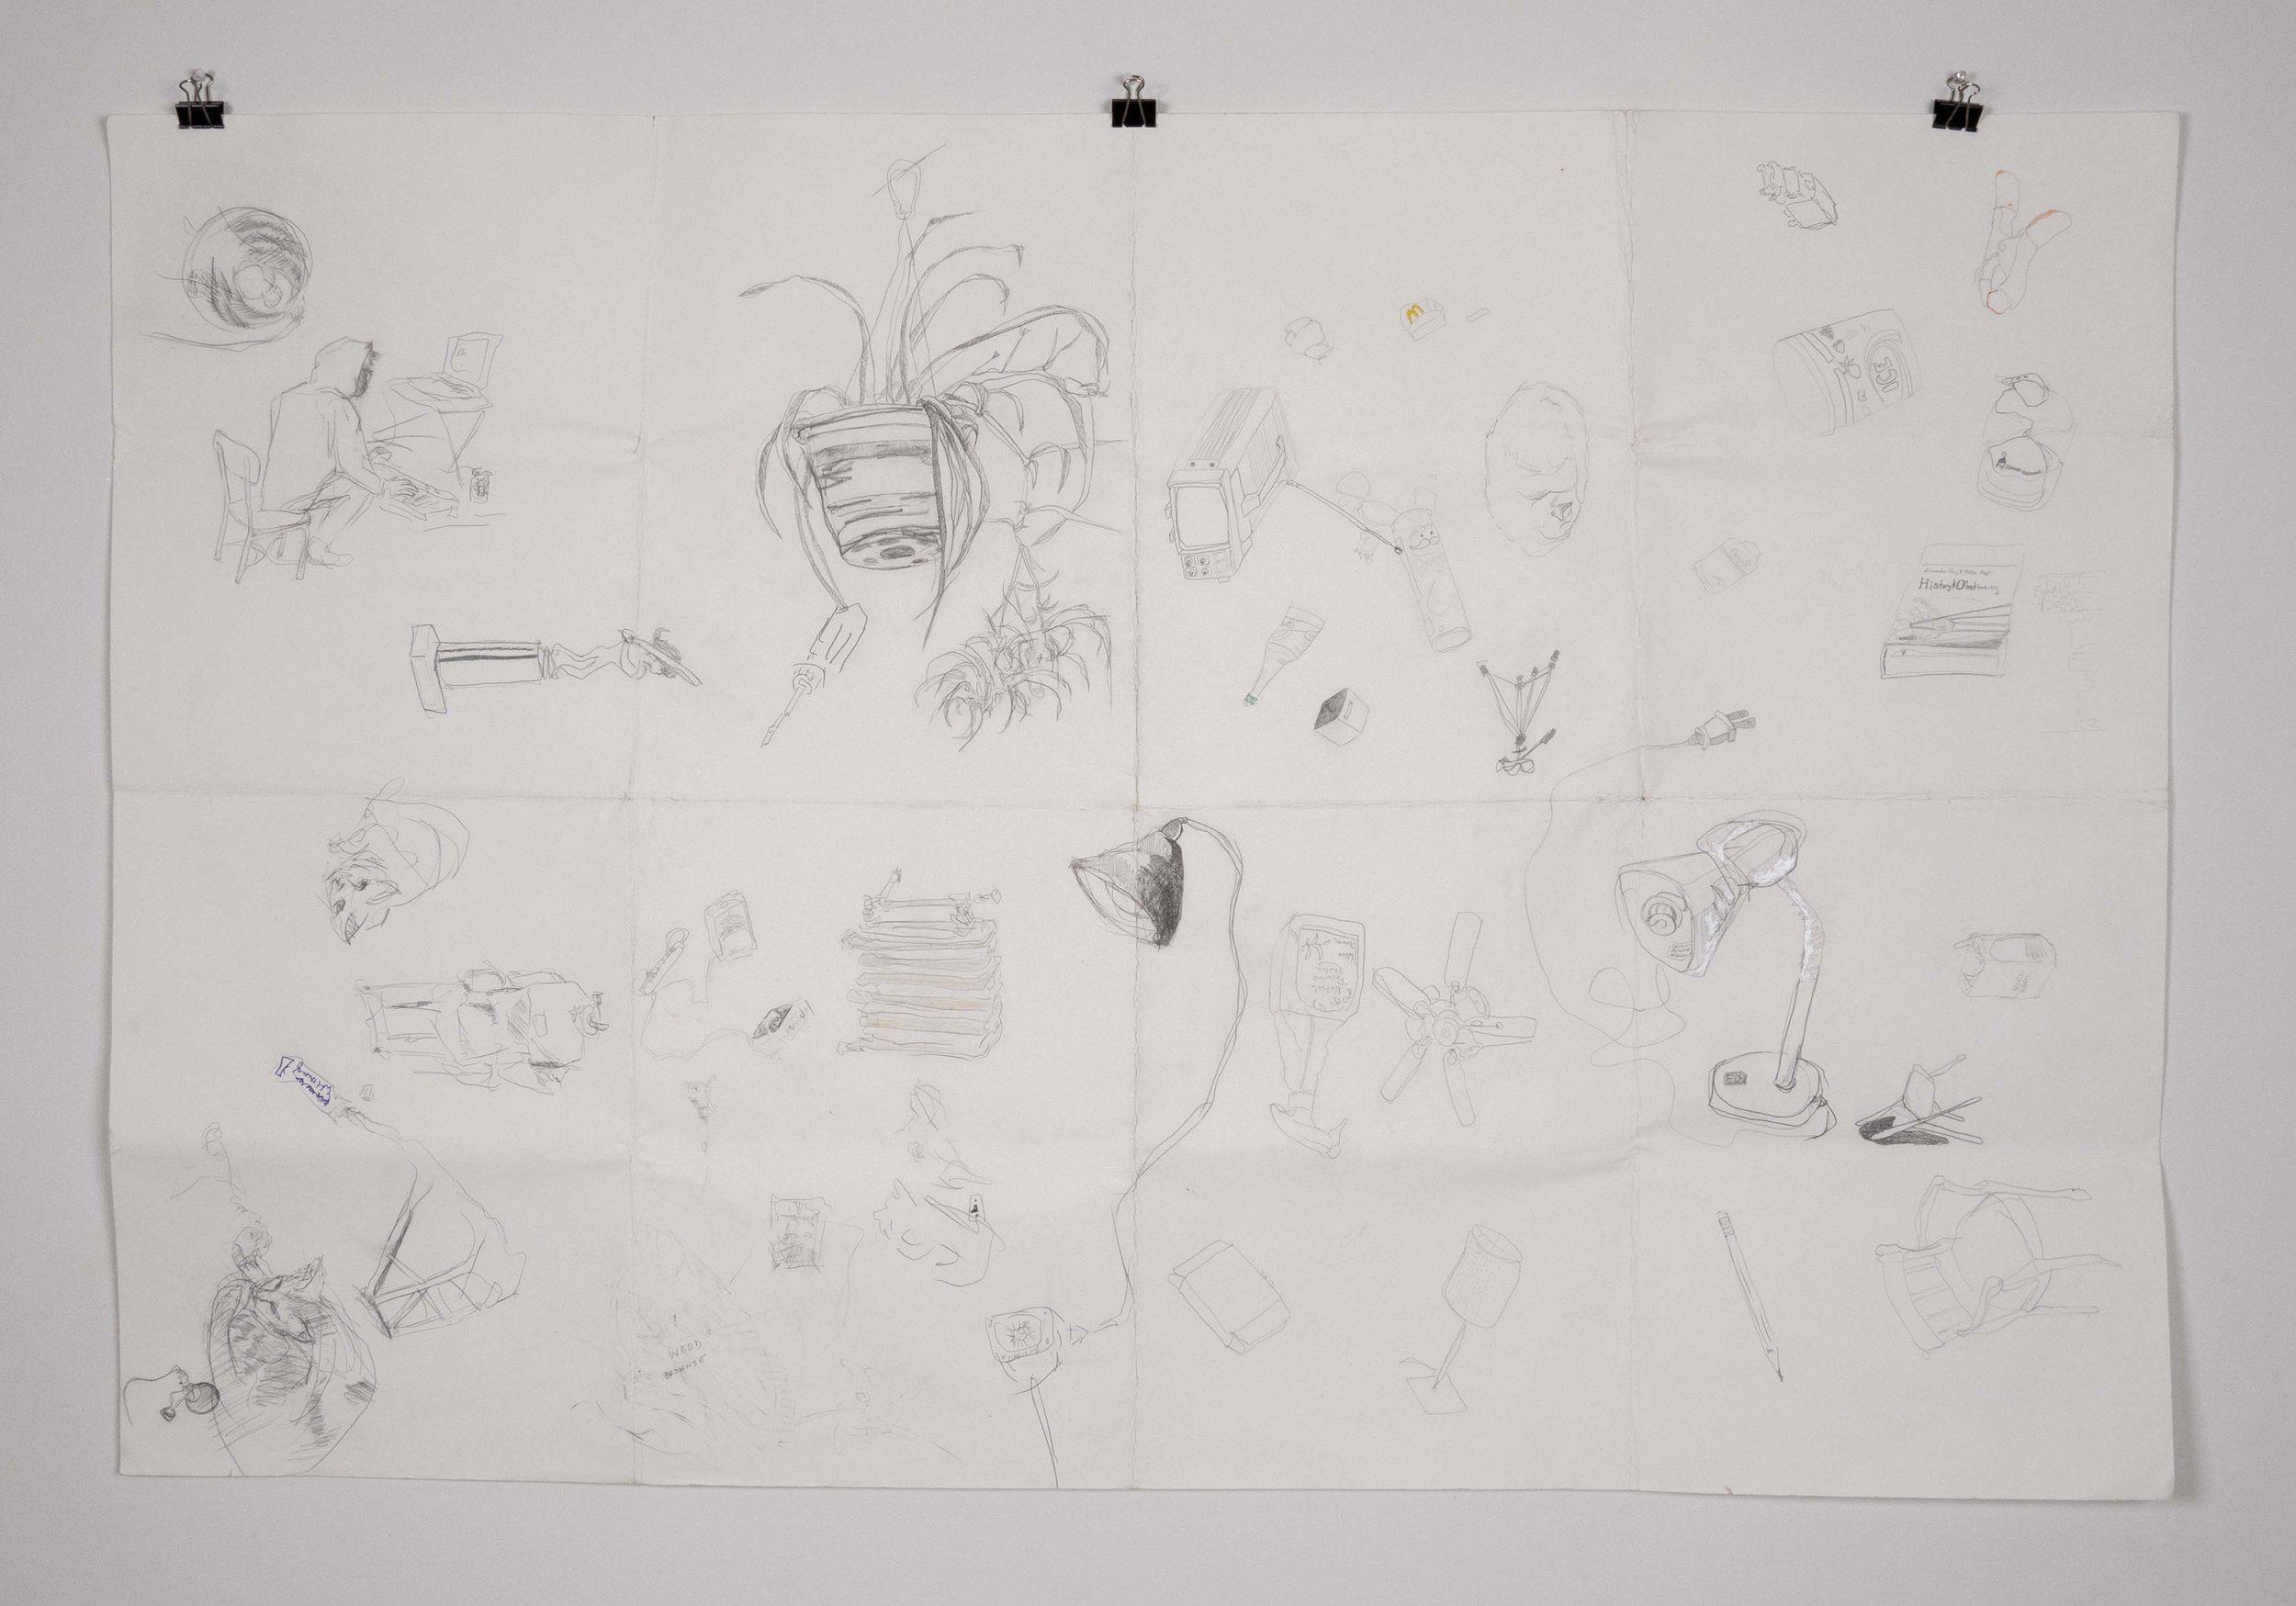 """Things seen while surviving multiple crises  - 40"""" x 60"""" - graphite and ink on blotter paper; conservation condition report and travel documentation, before and after conservation treatment documentation, final treatment report - 2018"""